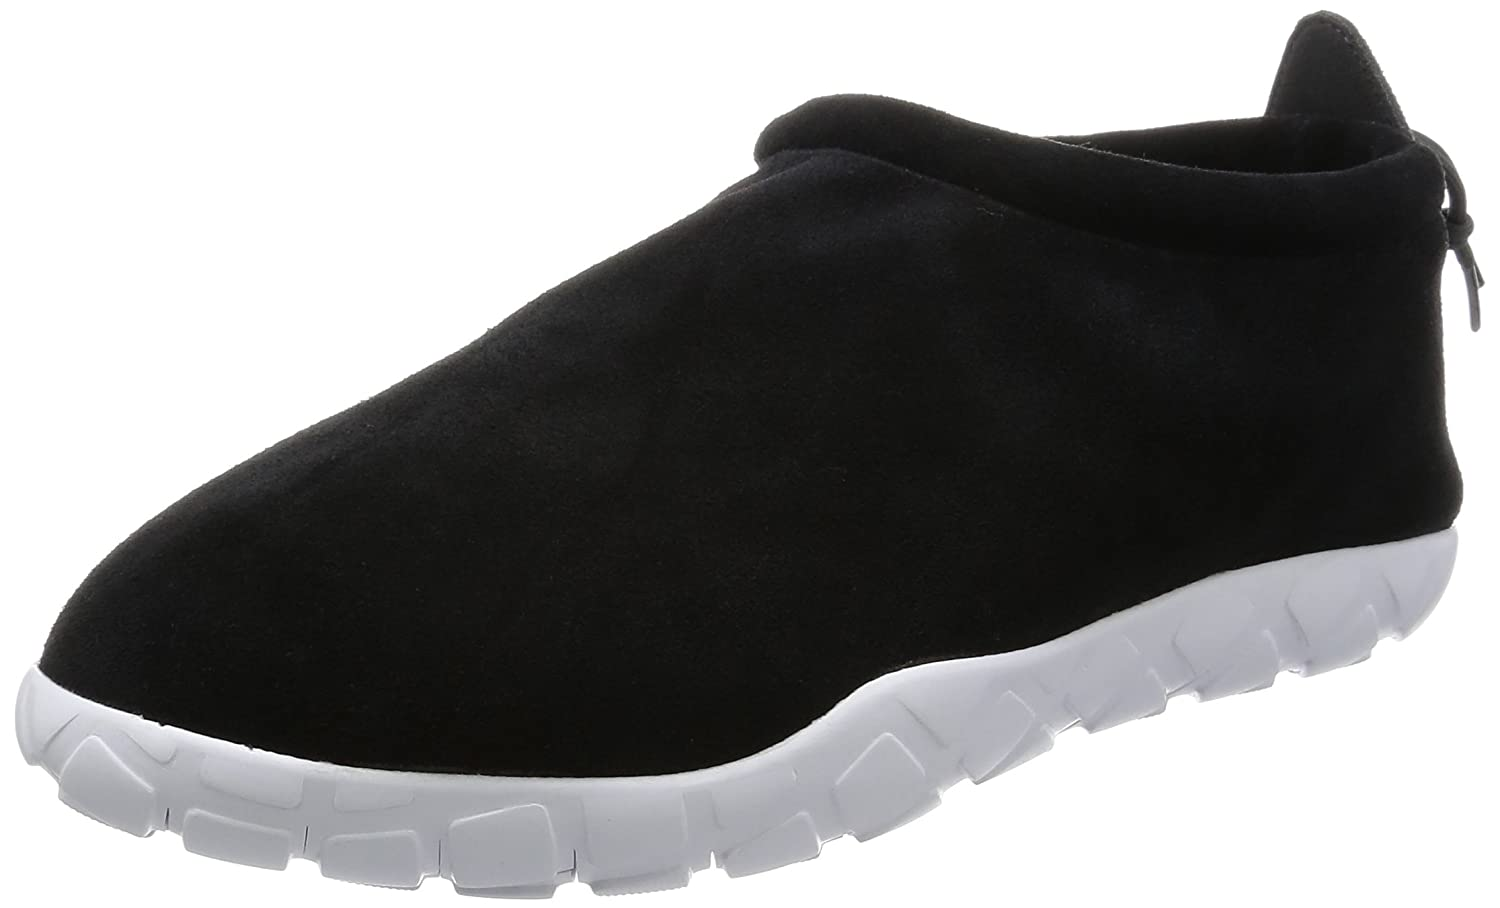 Nike AIR MOC ULTRA MENS fashion-sneakers 862440